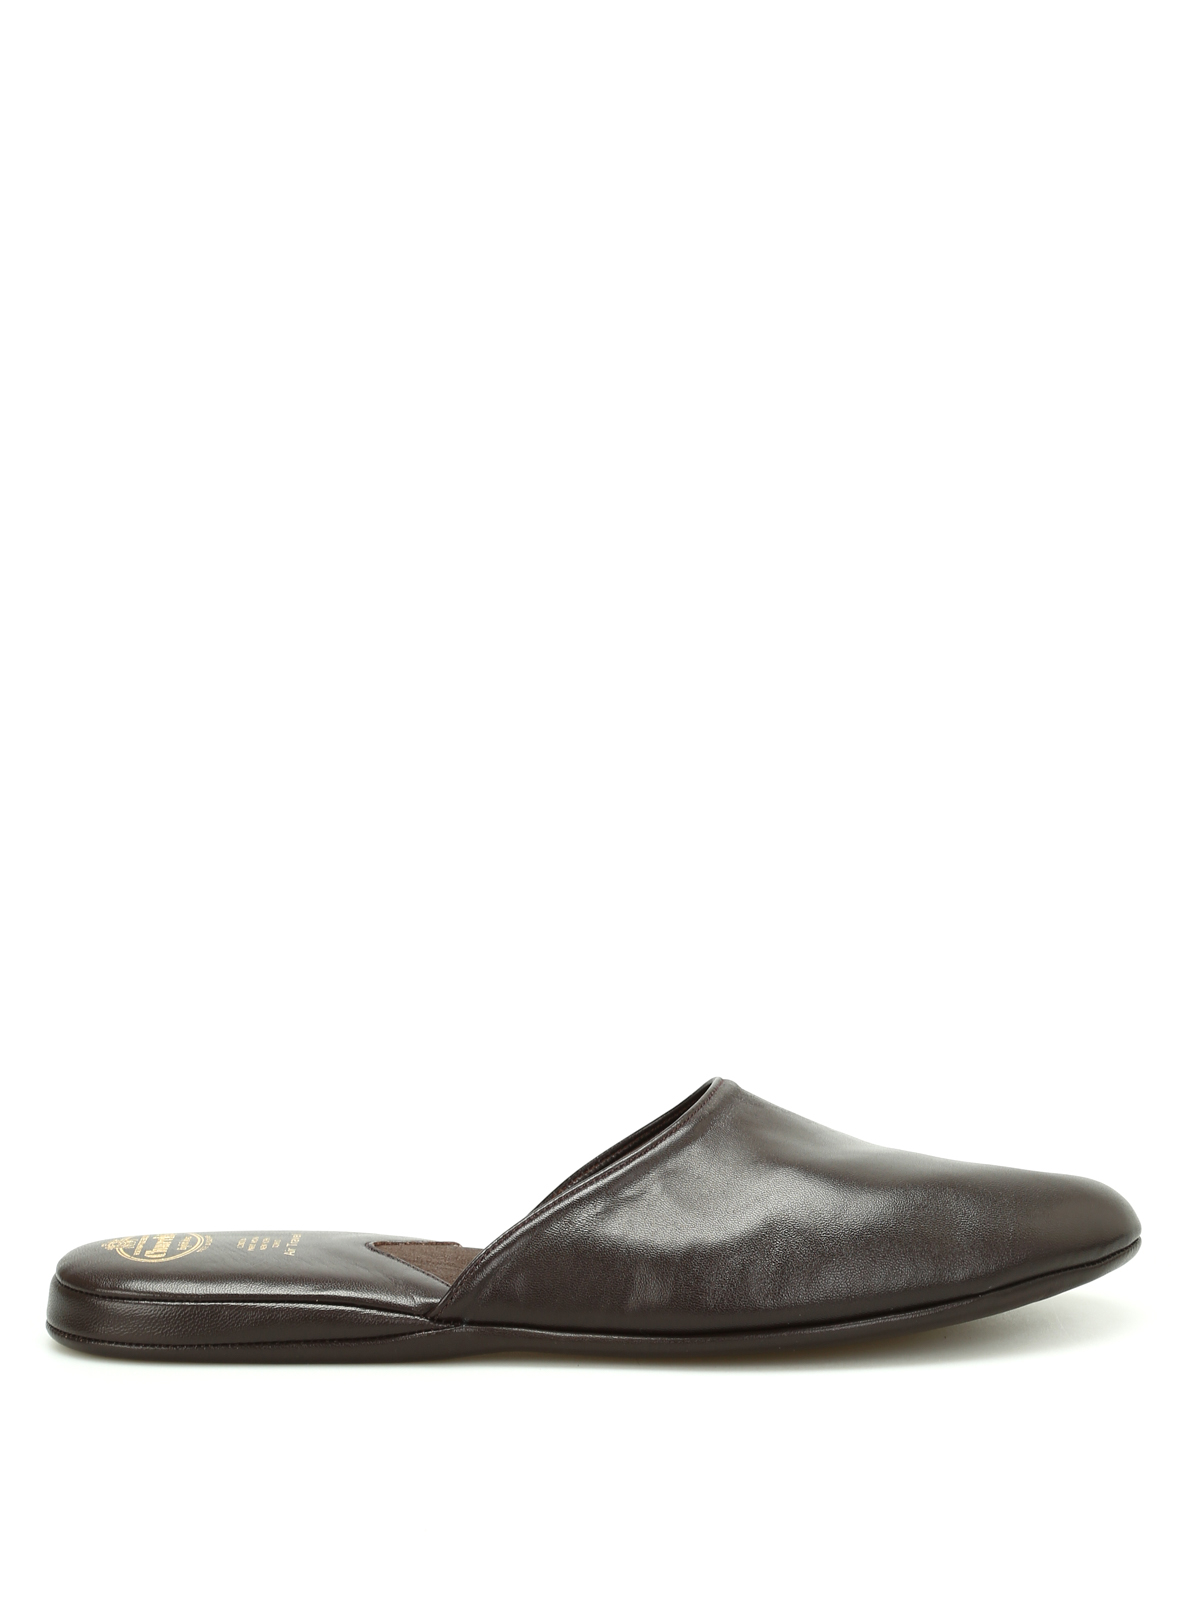 657994c0b916 Church s - Air Travel Persian leather slippers - Loafers   Slippers ...